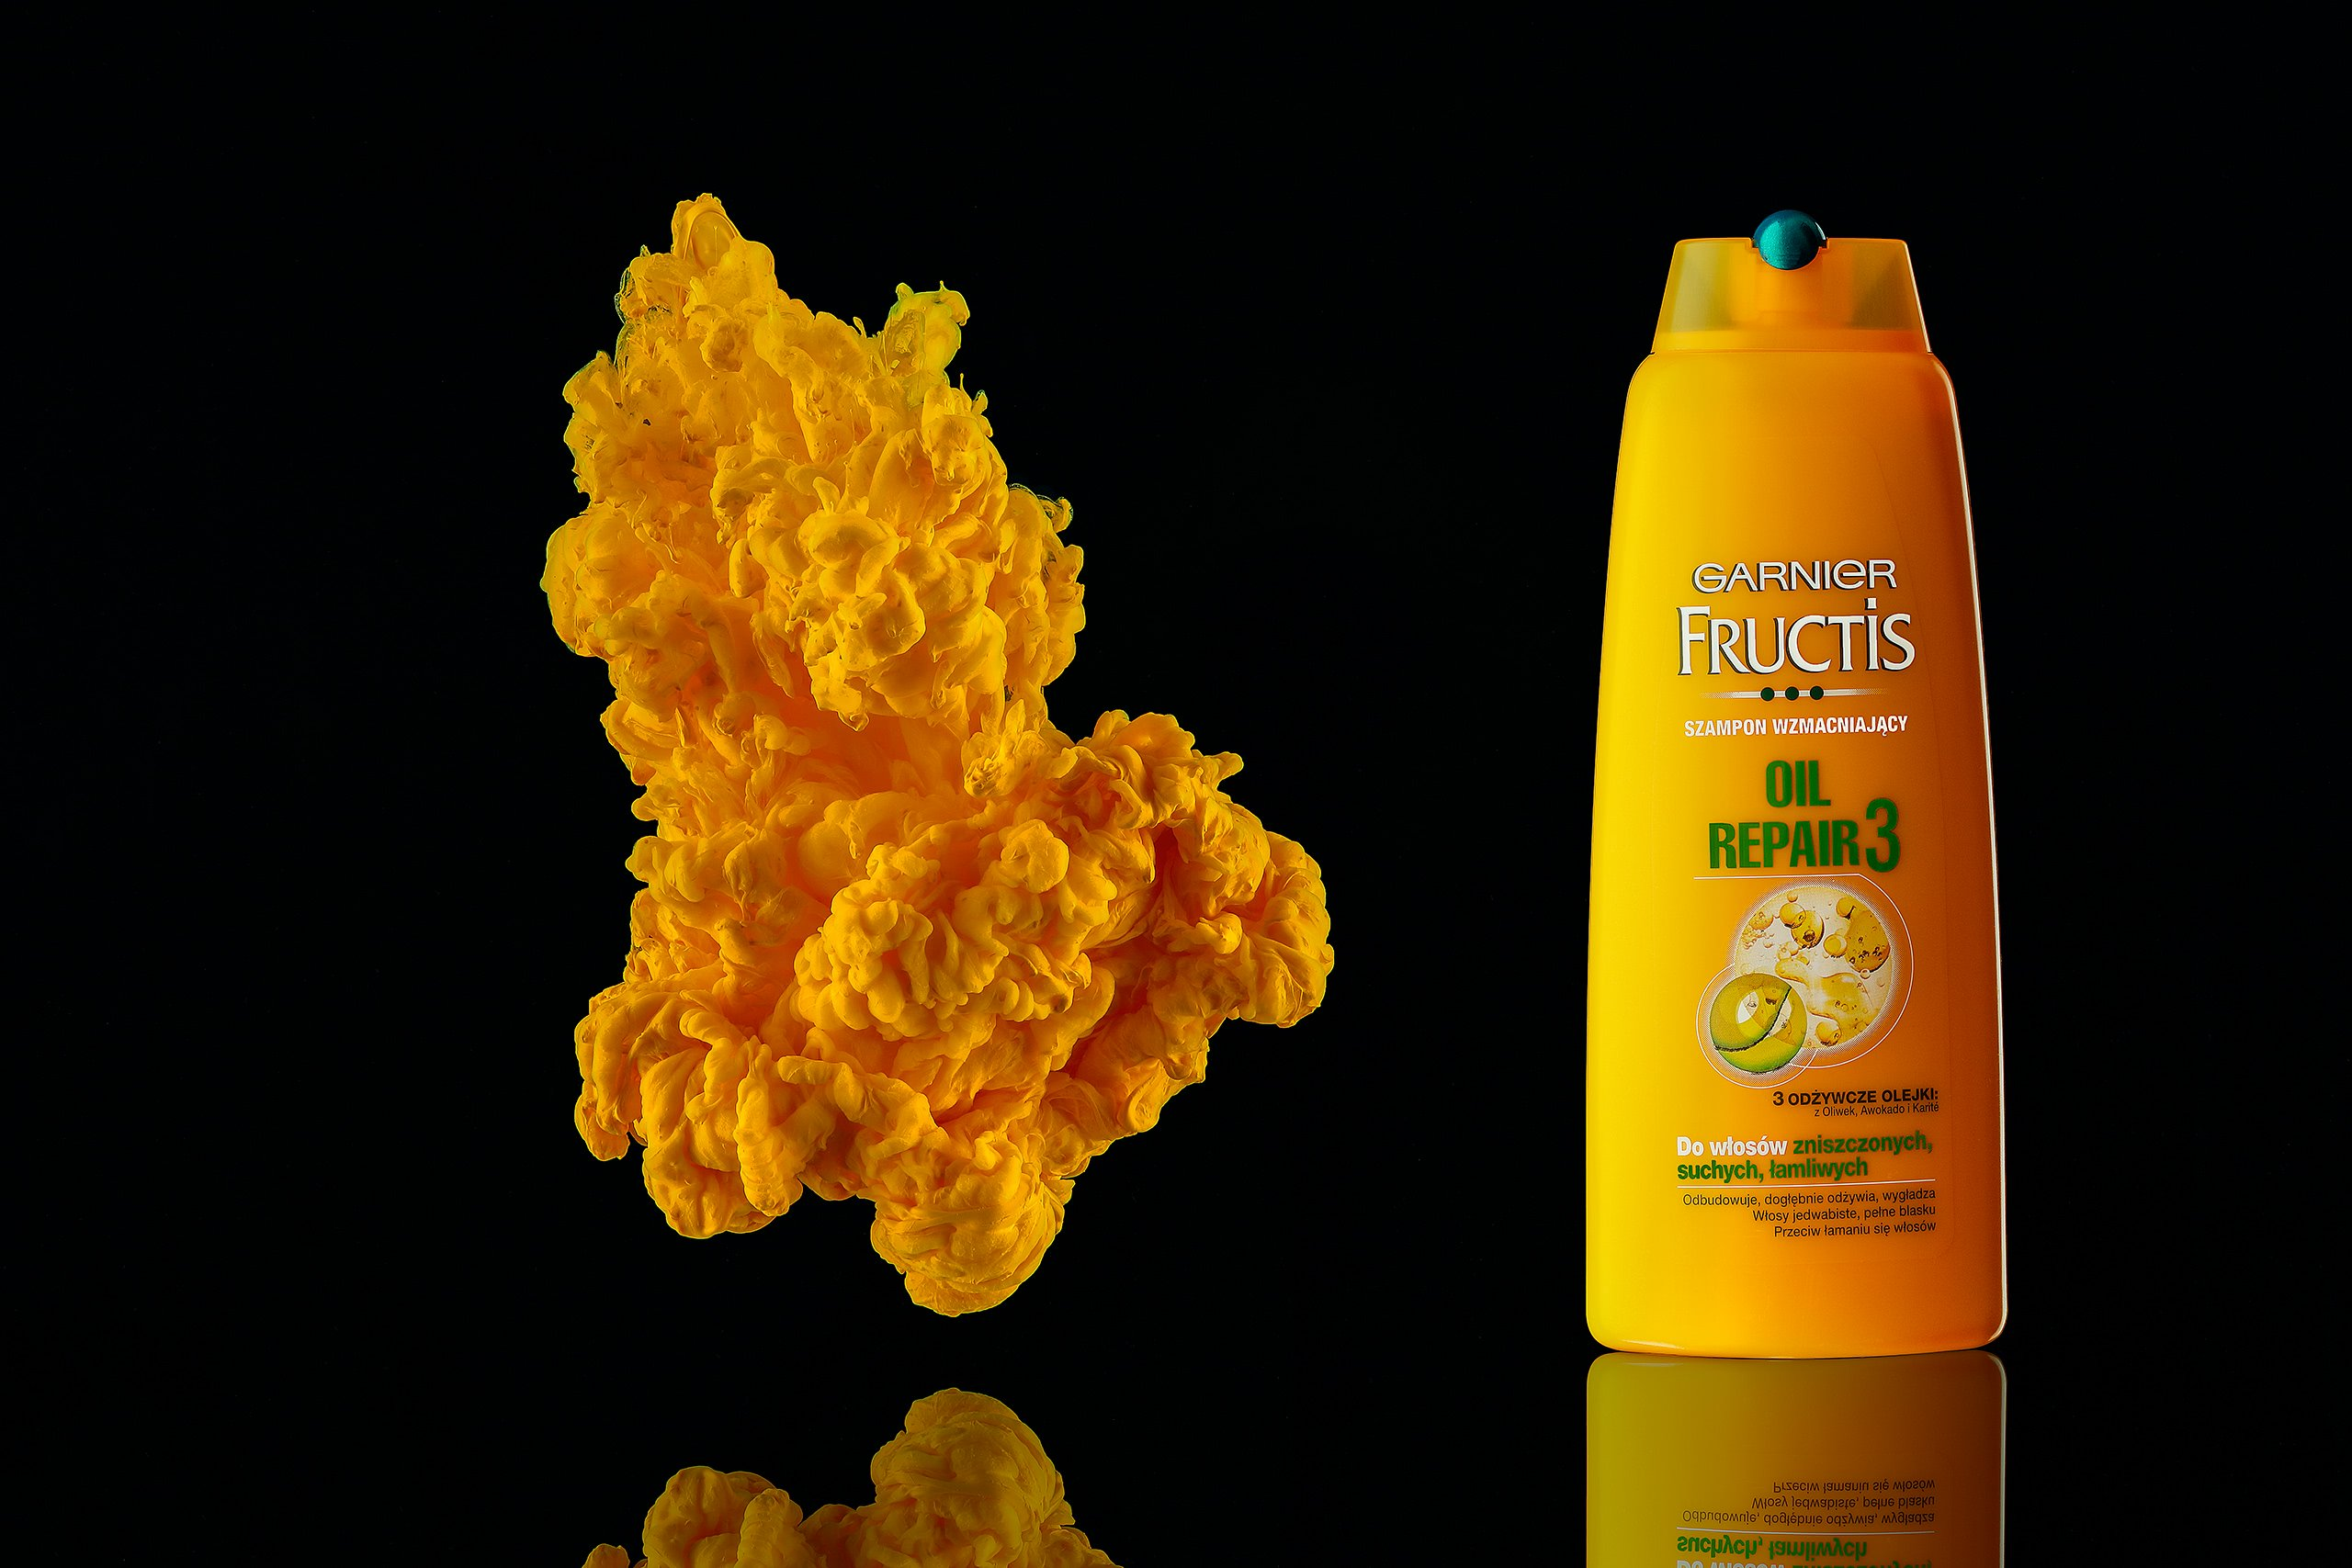 ecommerce product photography for yellow shampoo